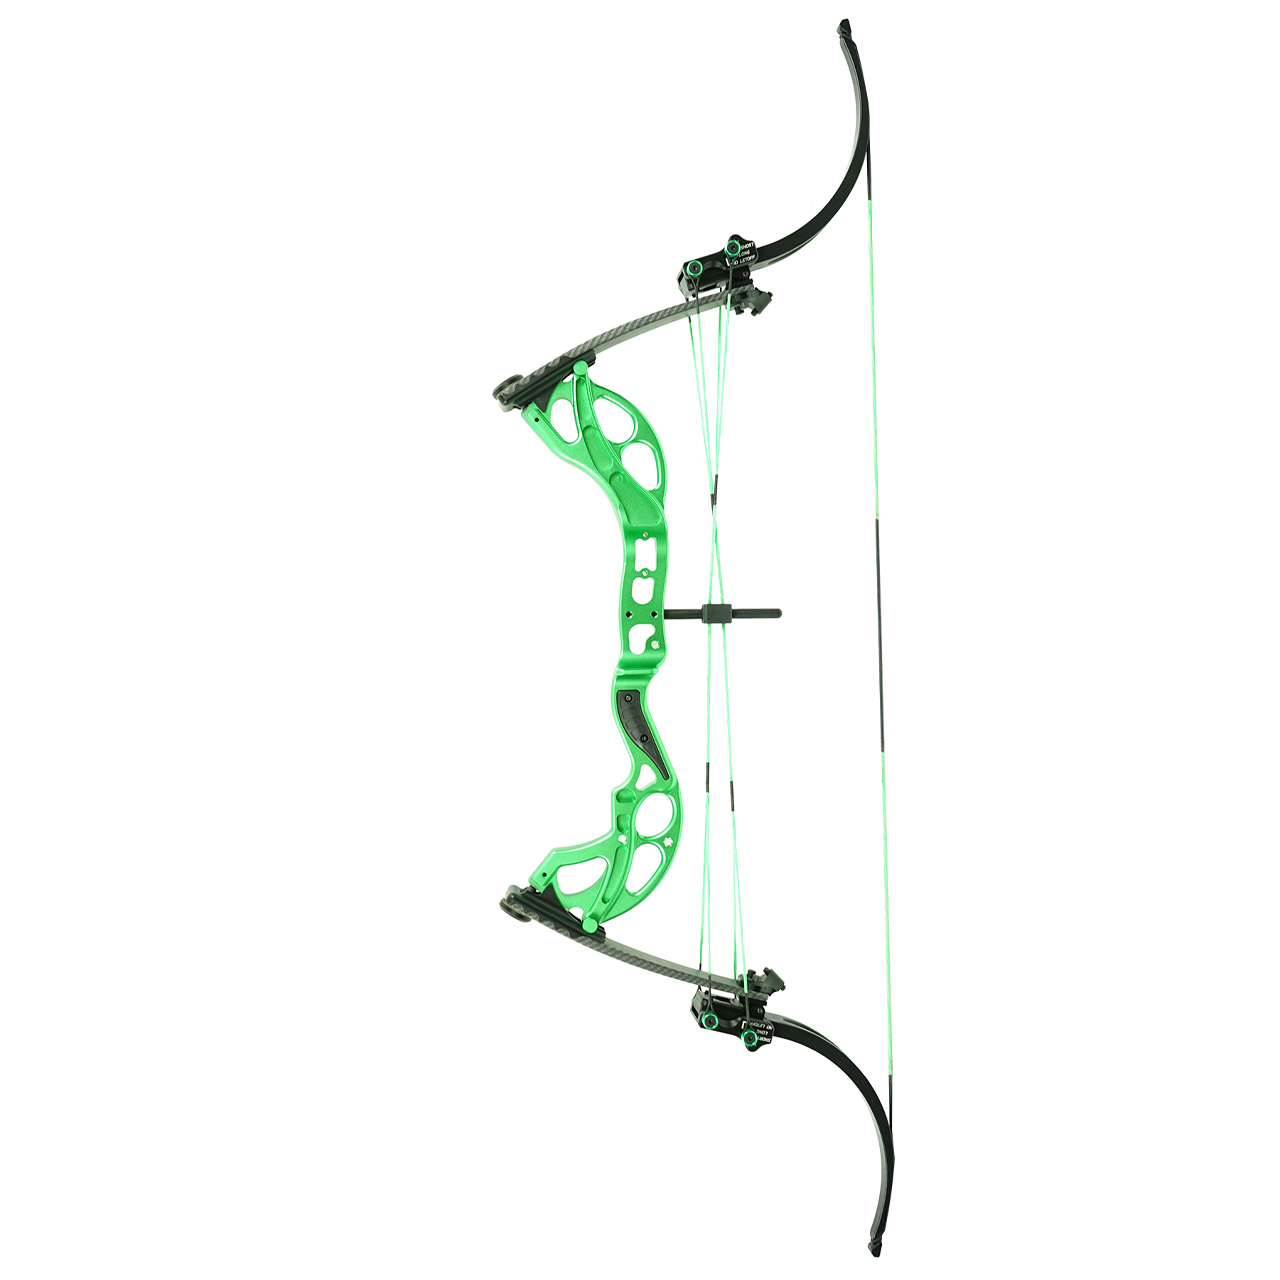 Muzzy LV-X Bowfishing Lever Bow Coming July 2019